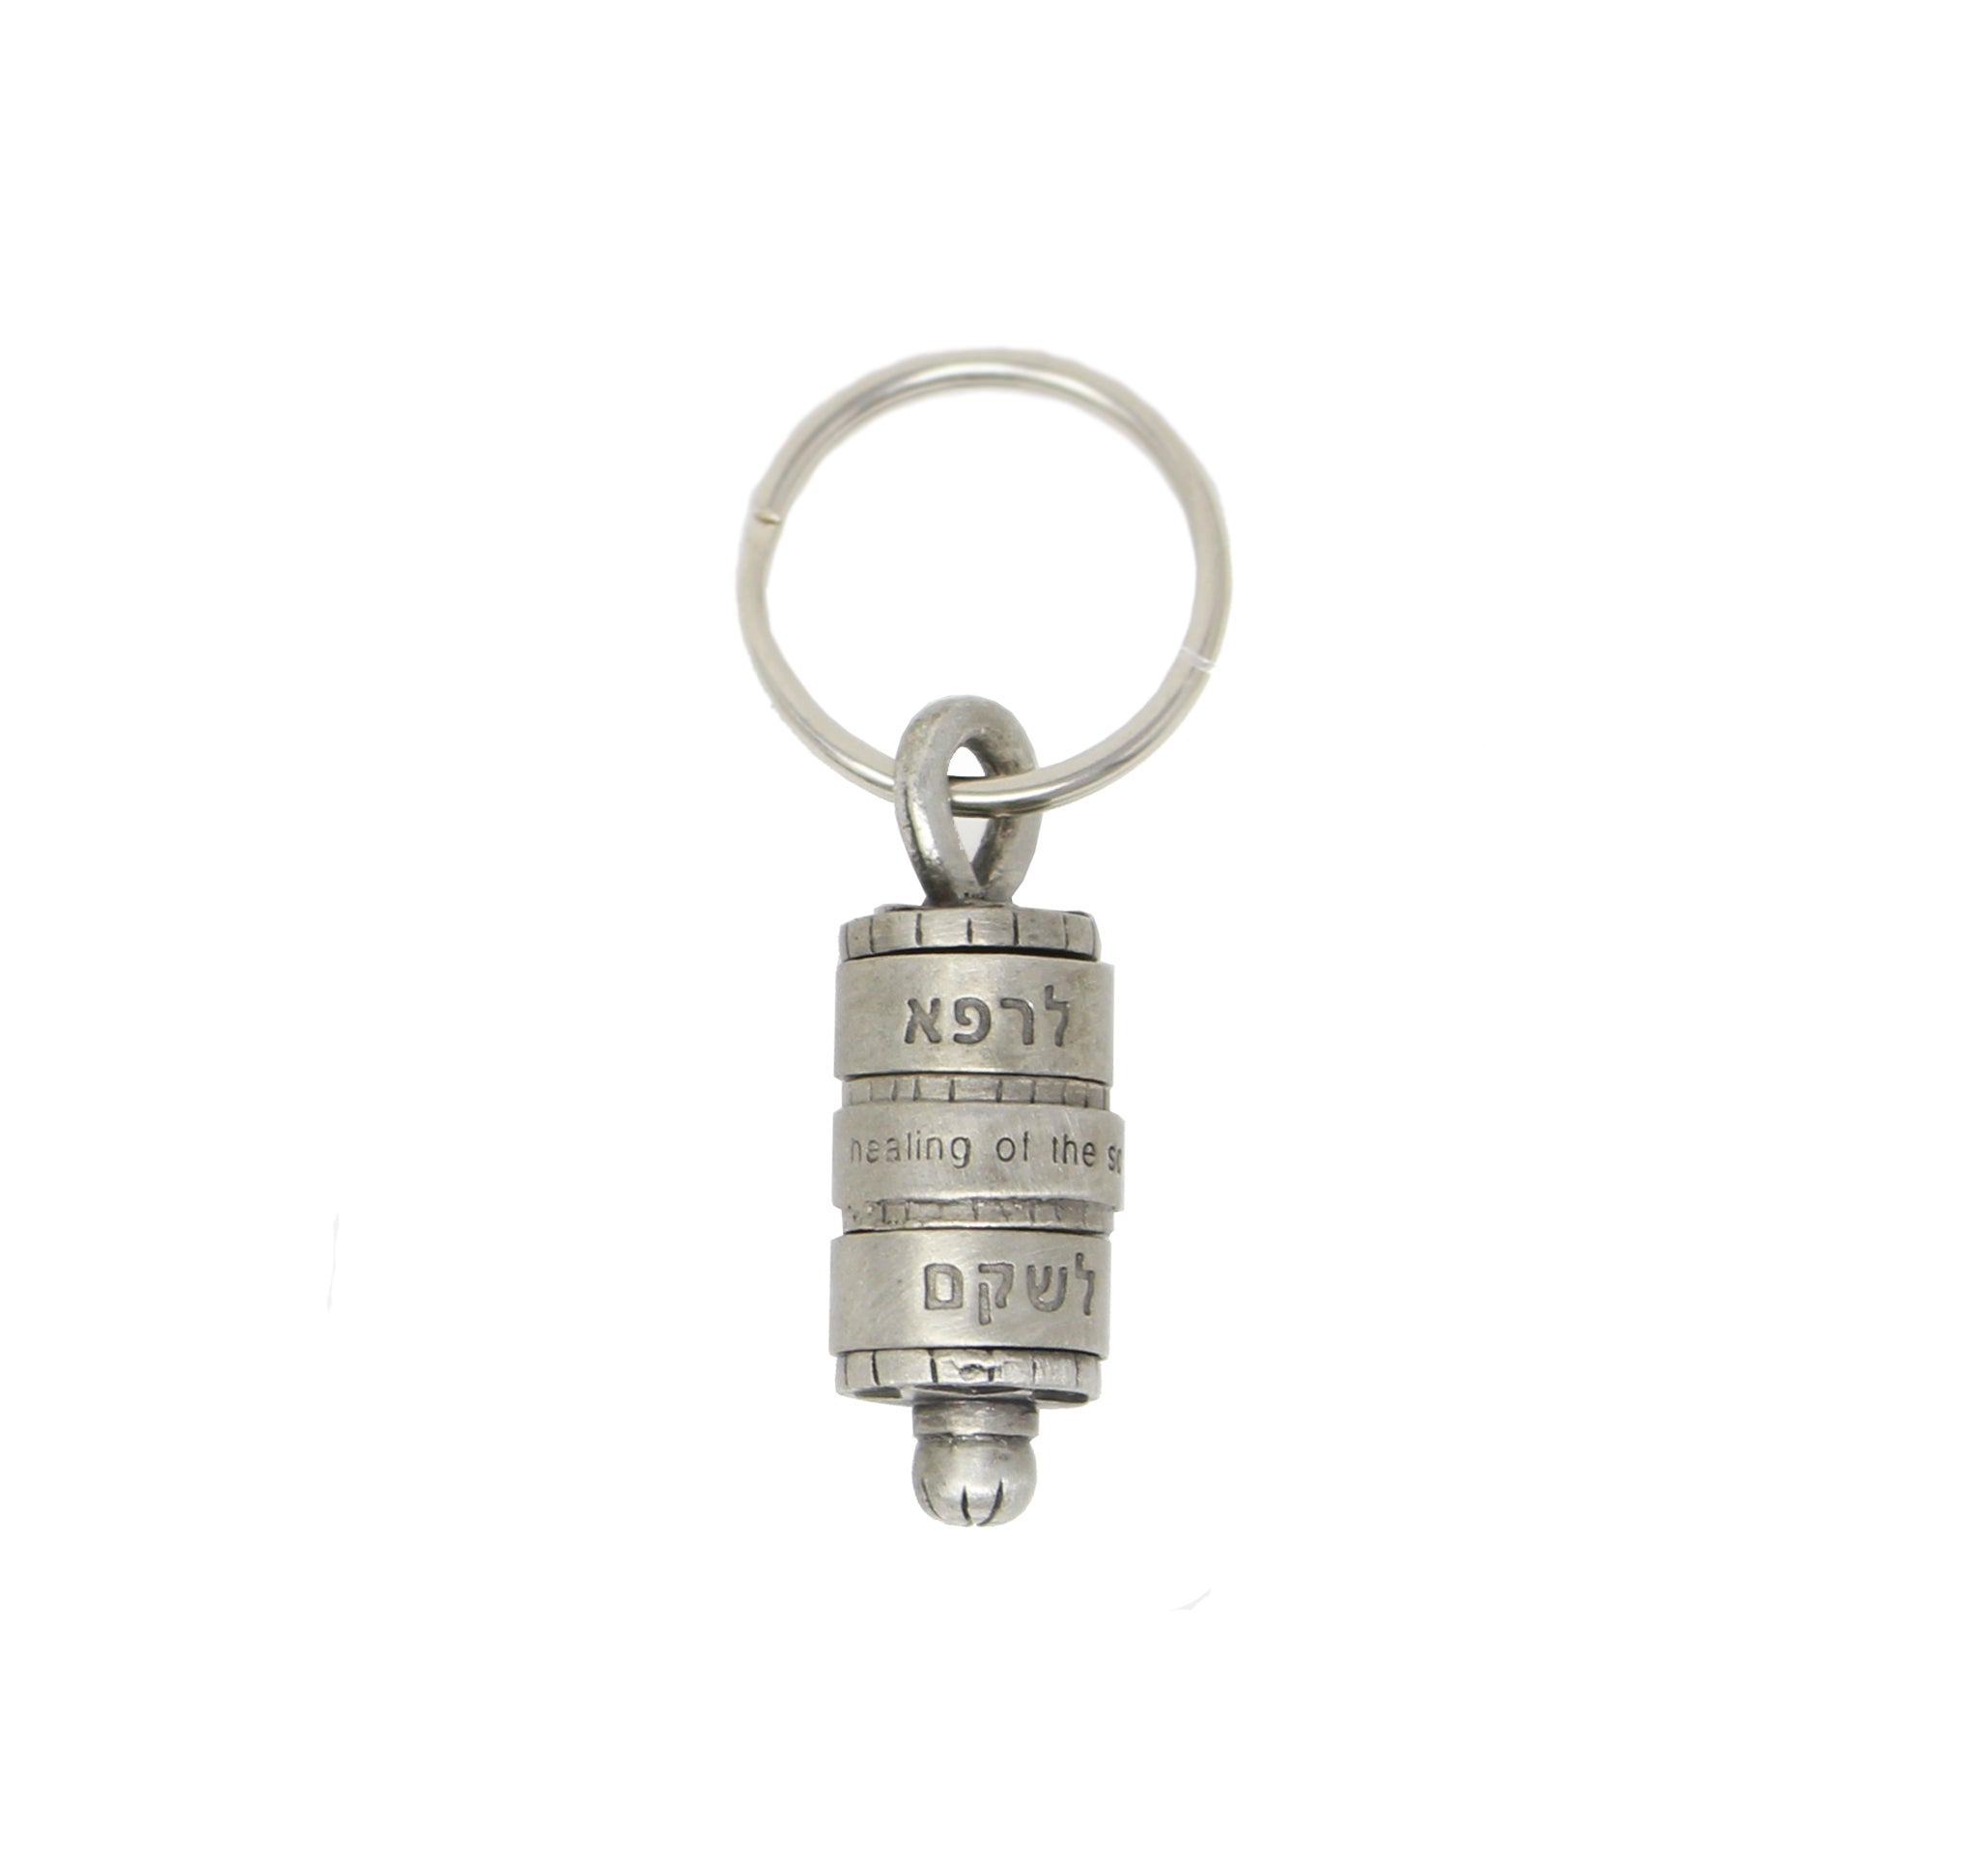 Prayer for Healing Keychain by Emily Rosenfeld